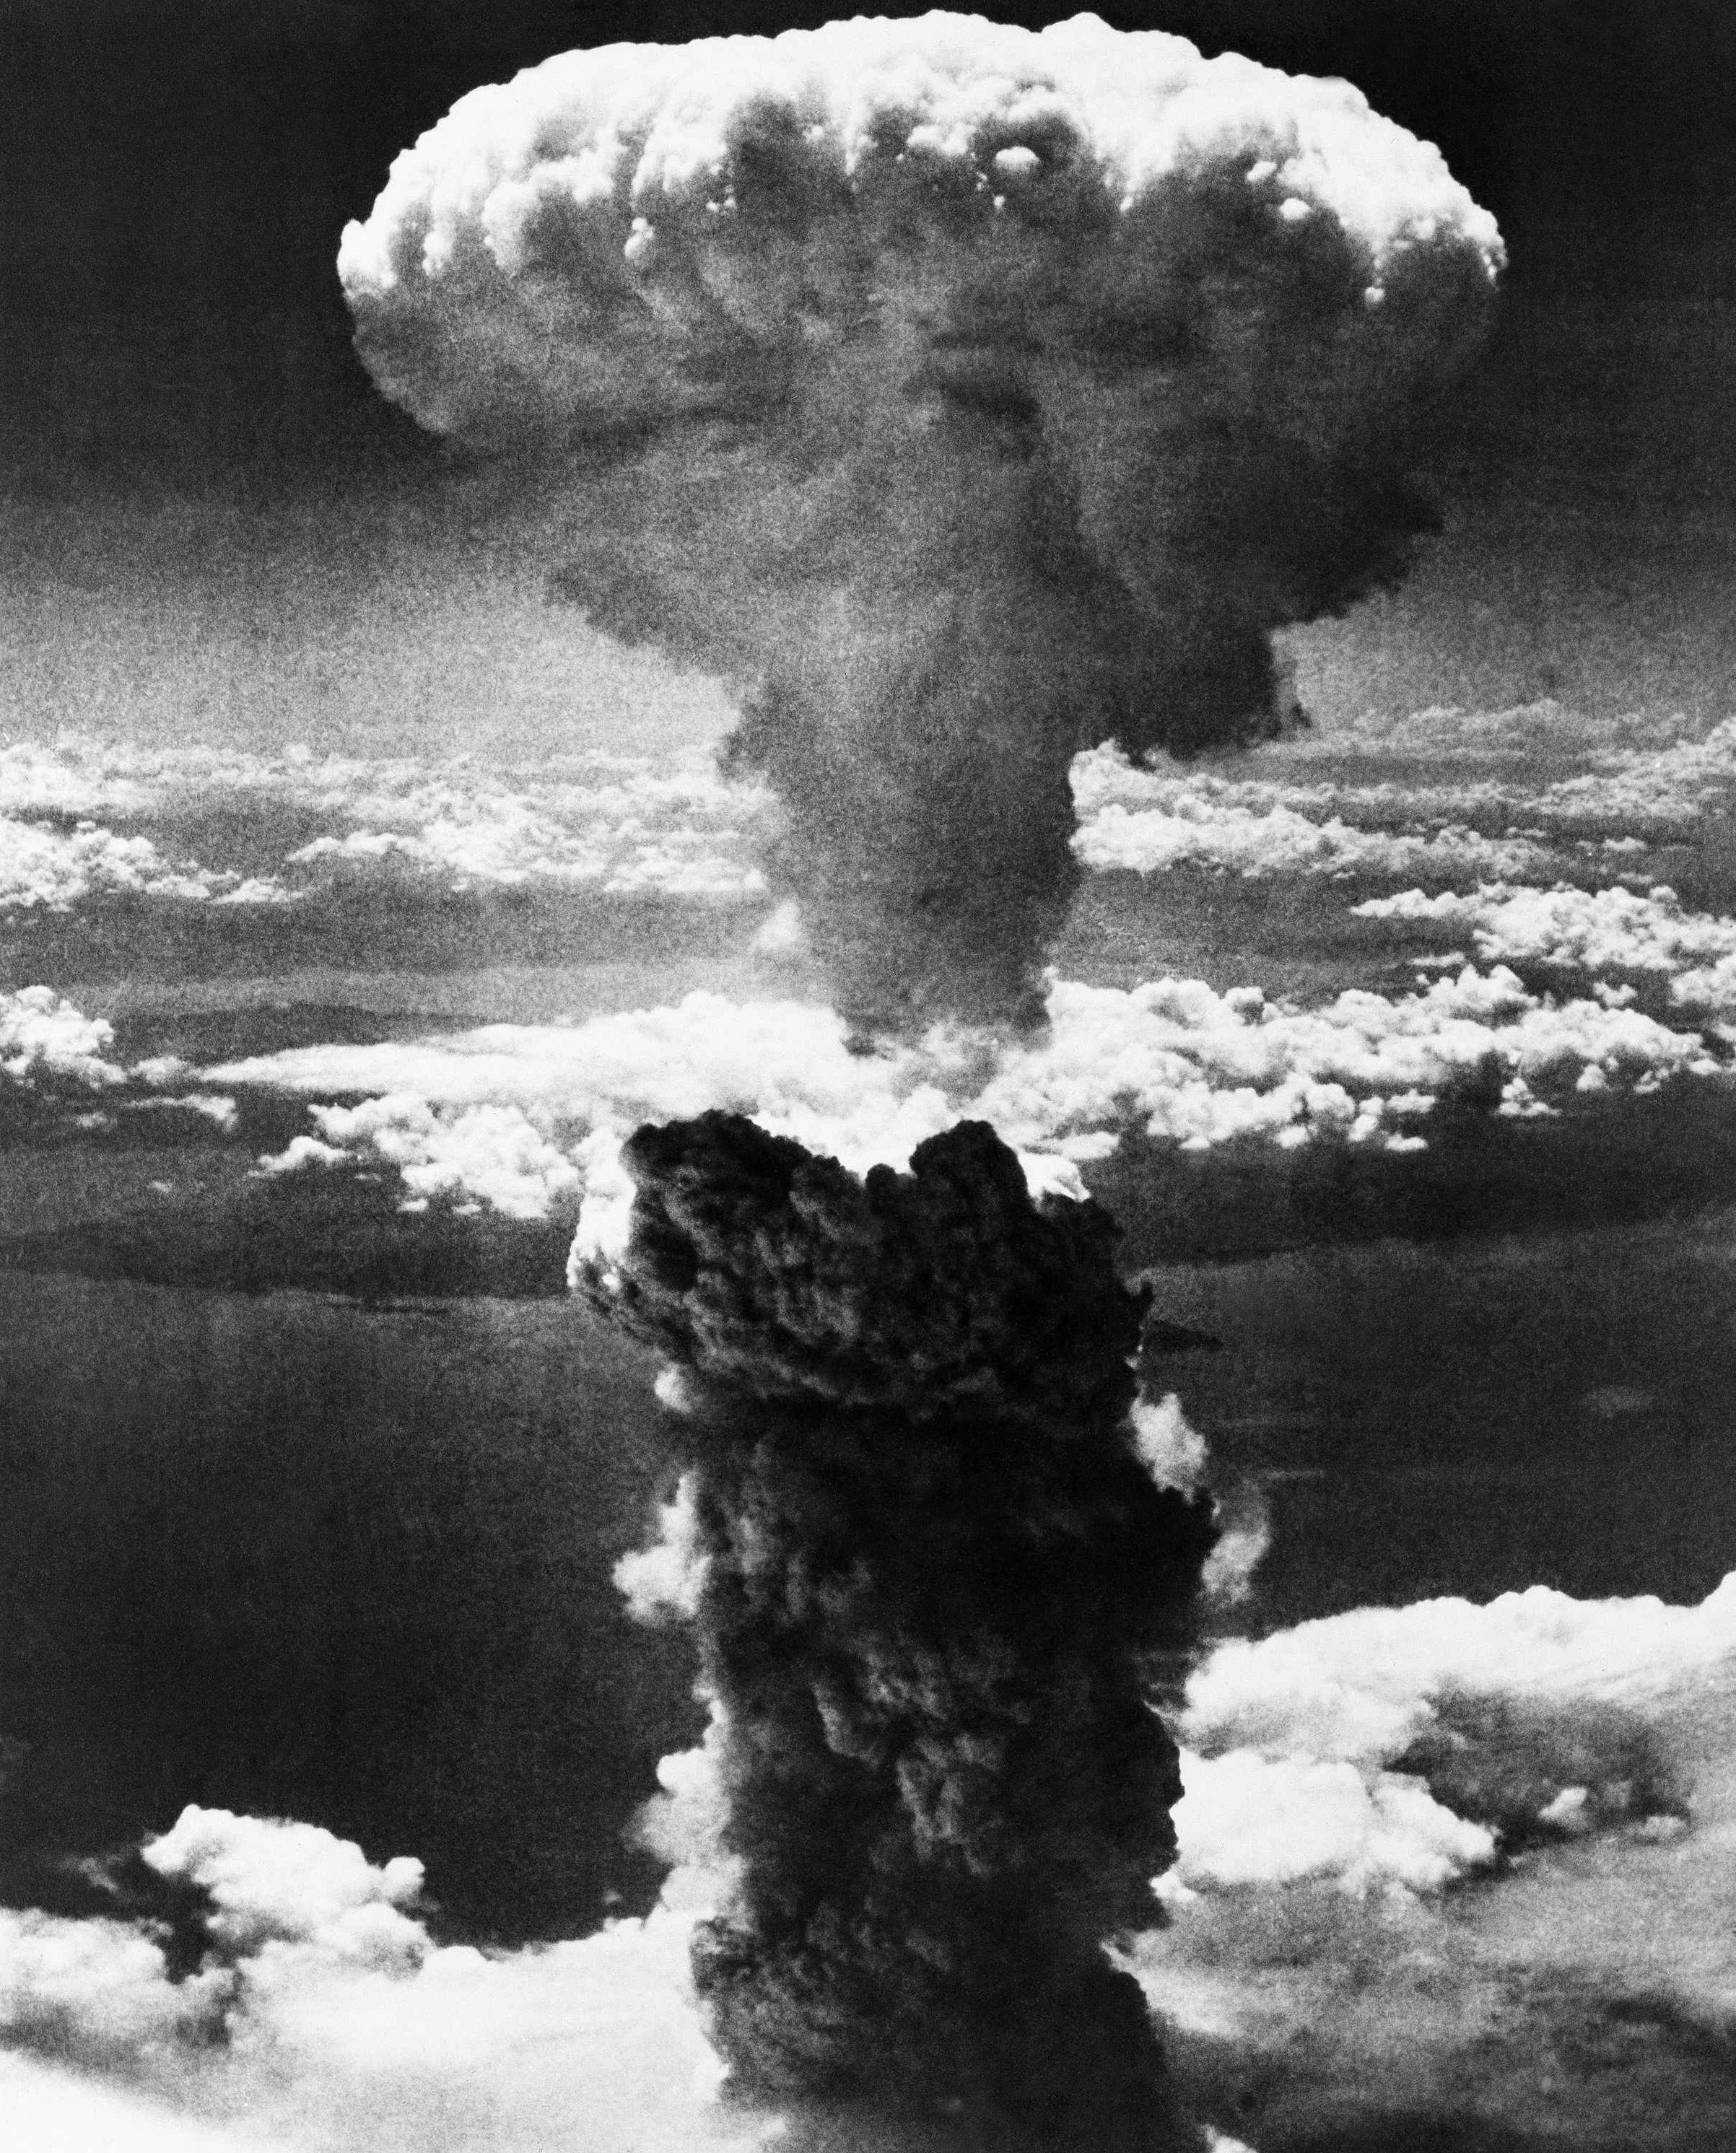 A mushroom cloud rises moments after the atomic bomb was dropped on the Japanese city of Nagasaki on Aug. 9, 1945, three days after the U.S. dropped an atomic bomb on Hiroshima.